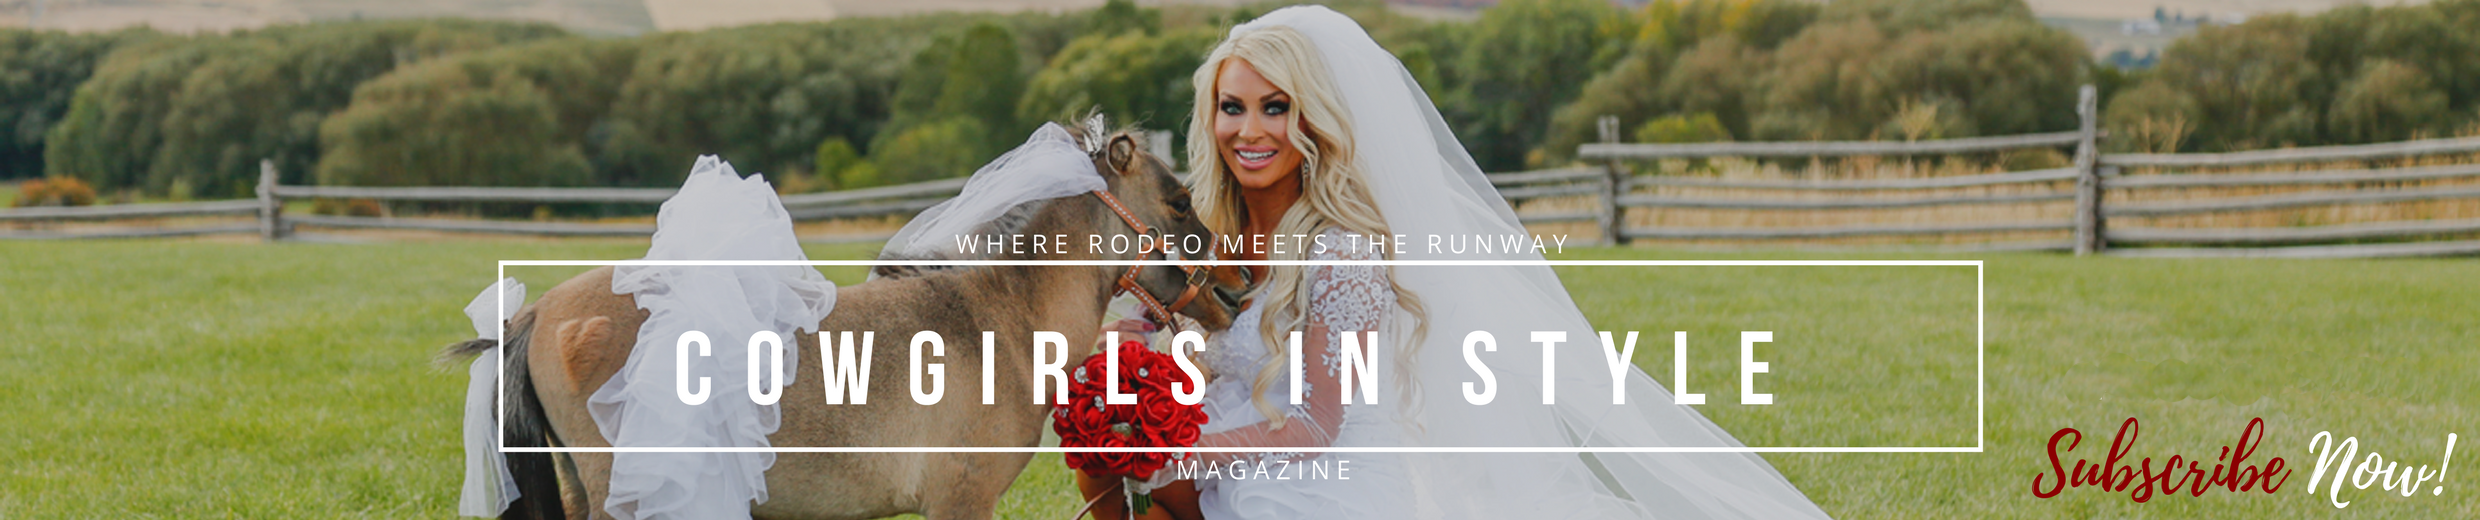 April 2018 - Cowgirls In Style Magazine